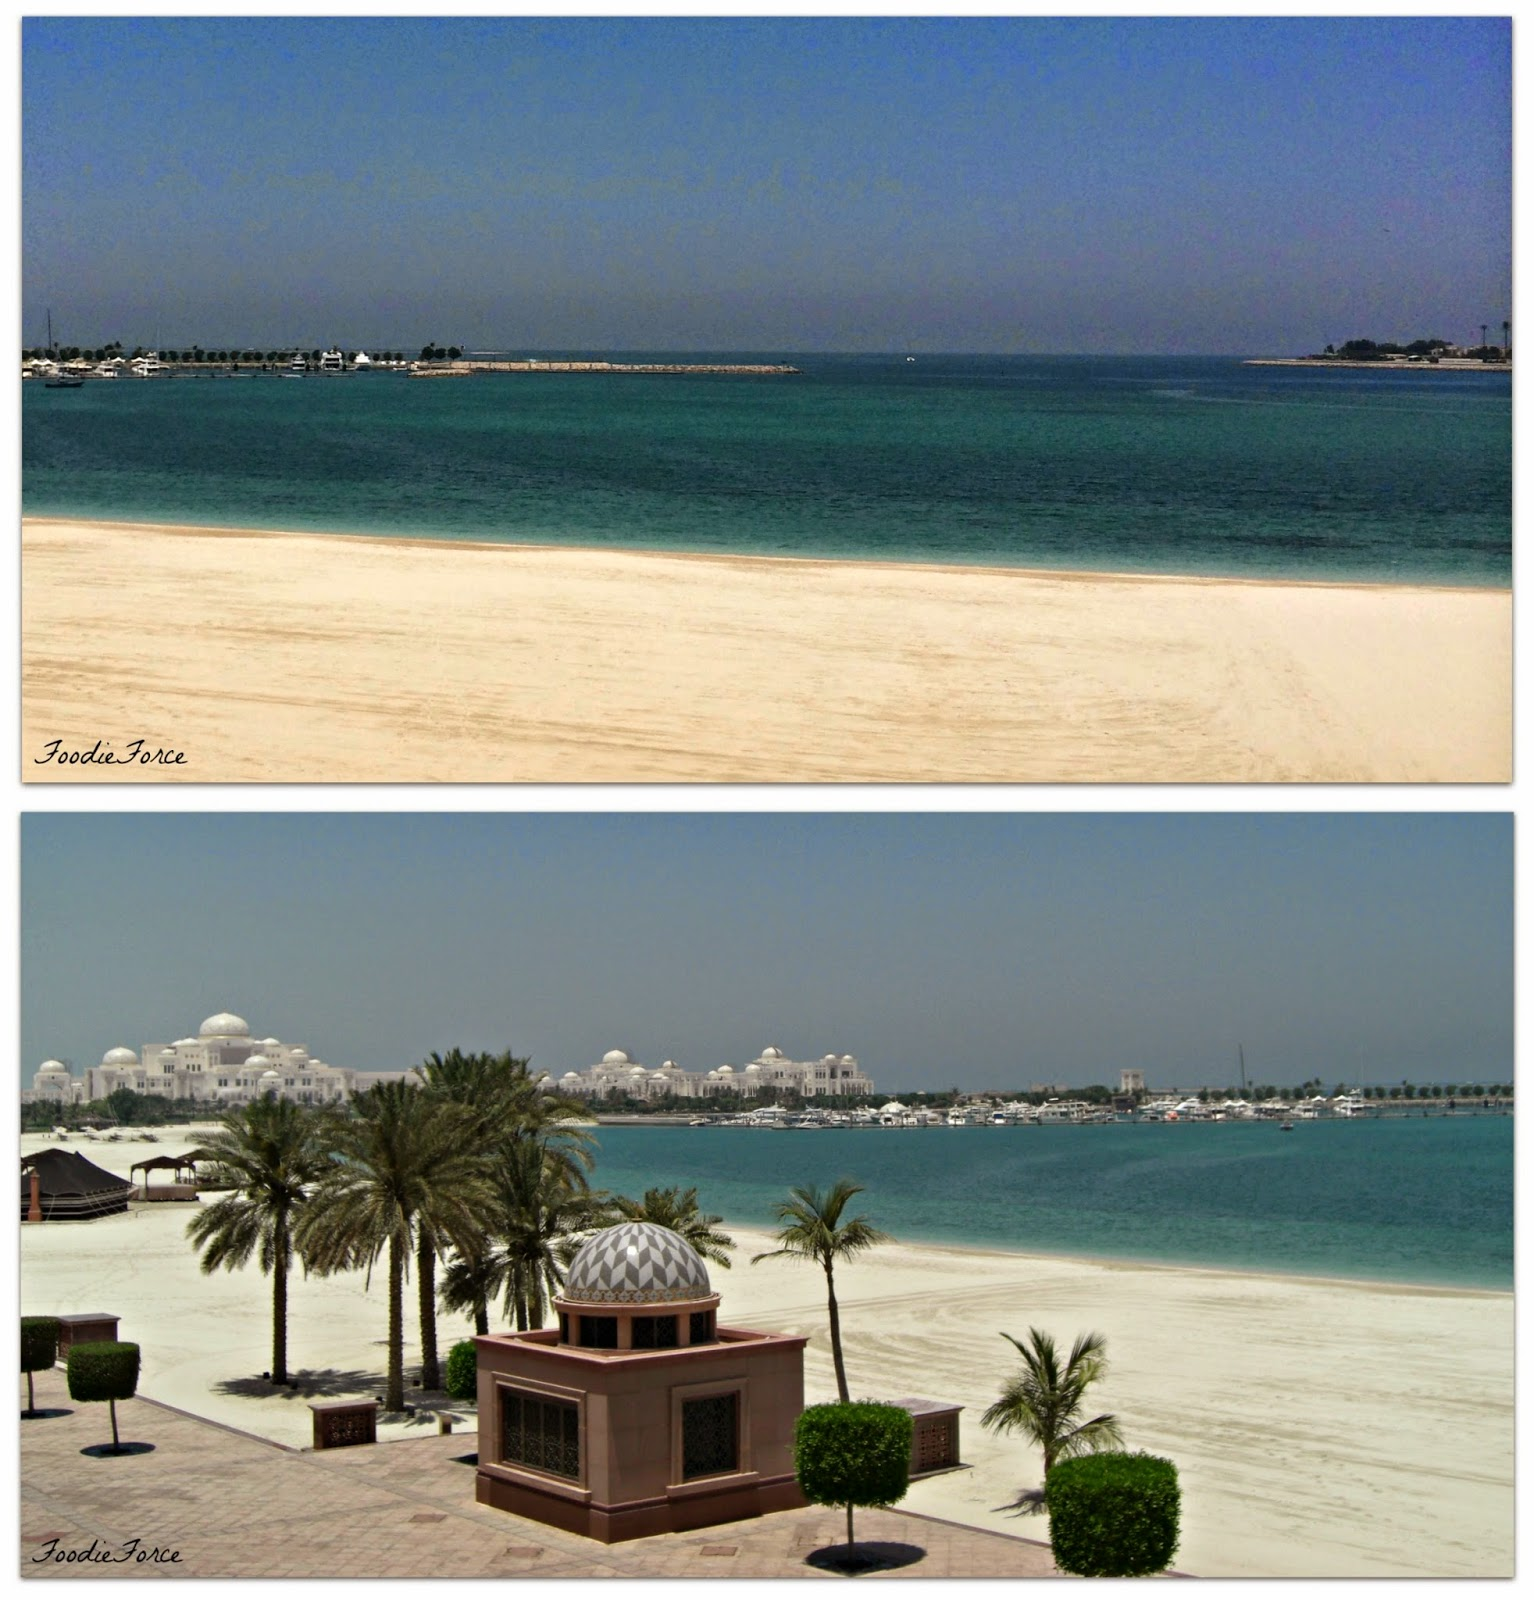 Emirate Palace beach